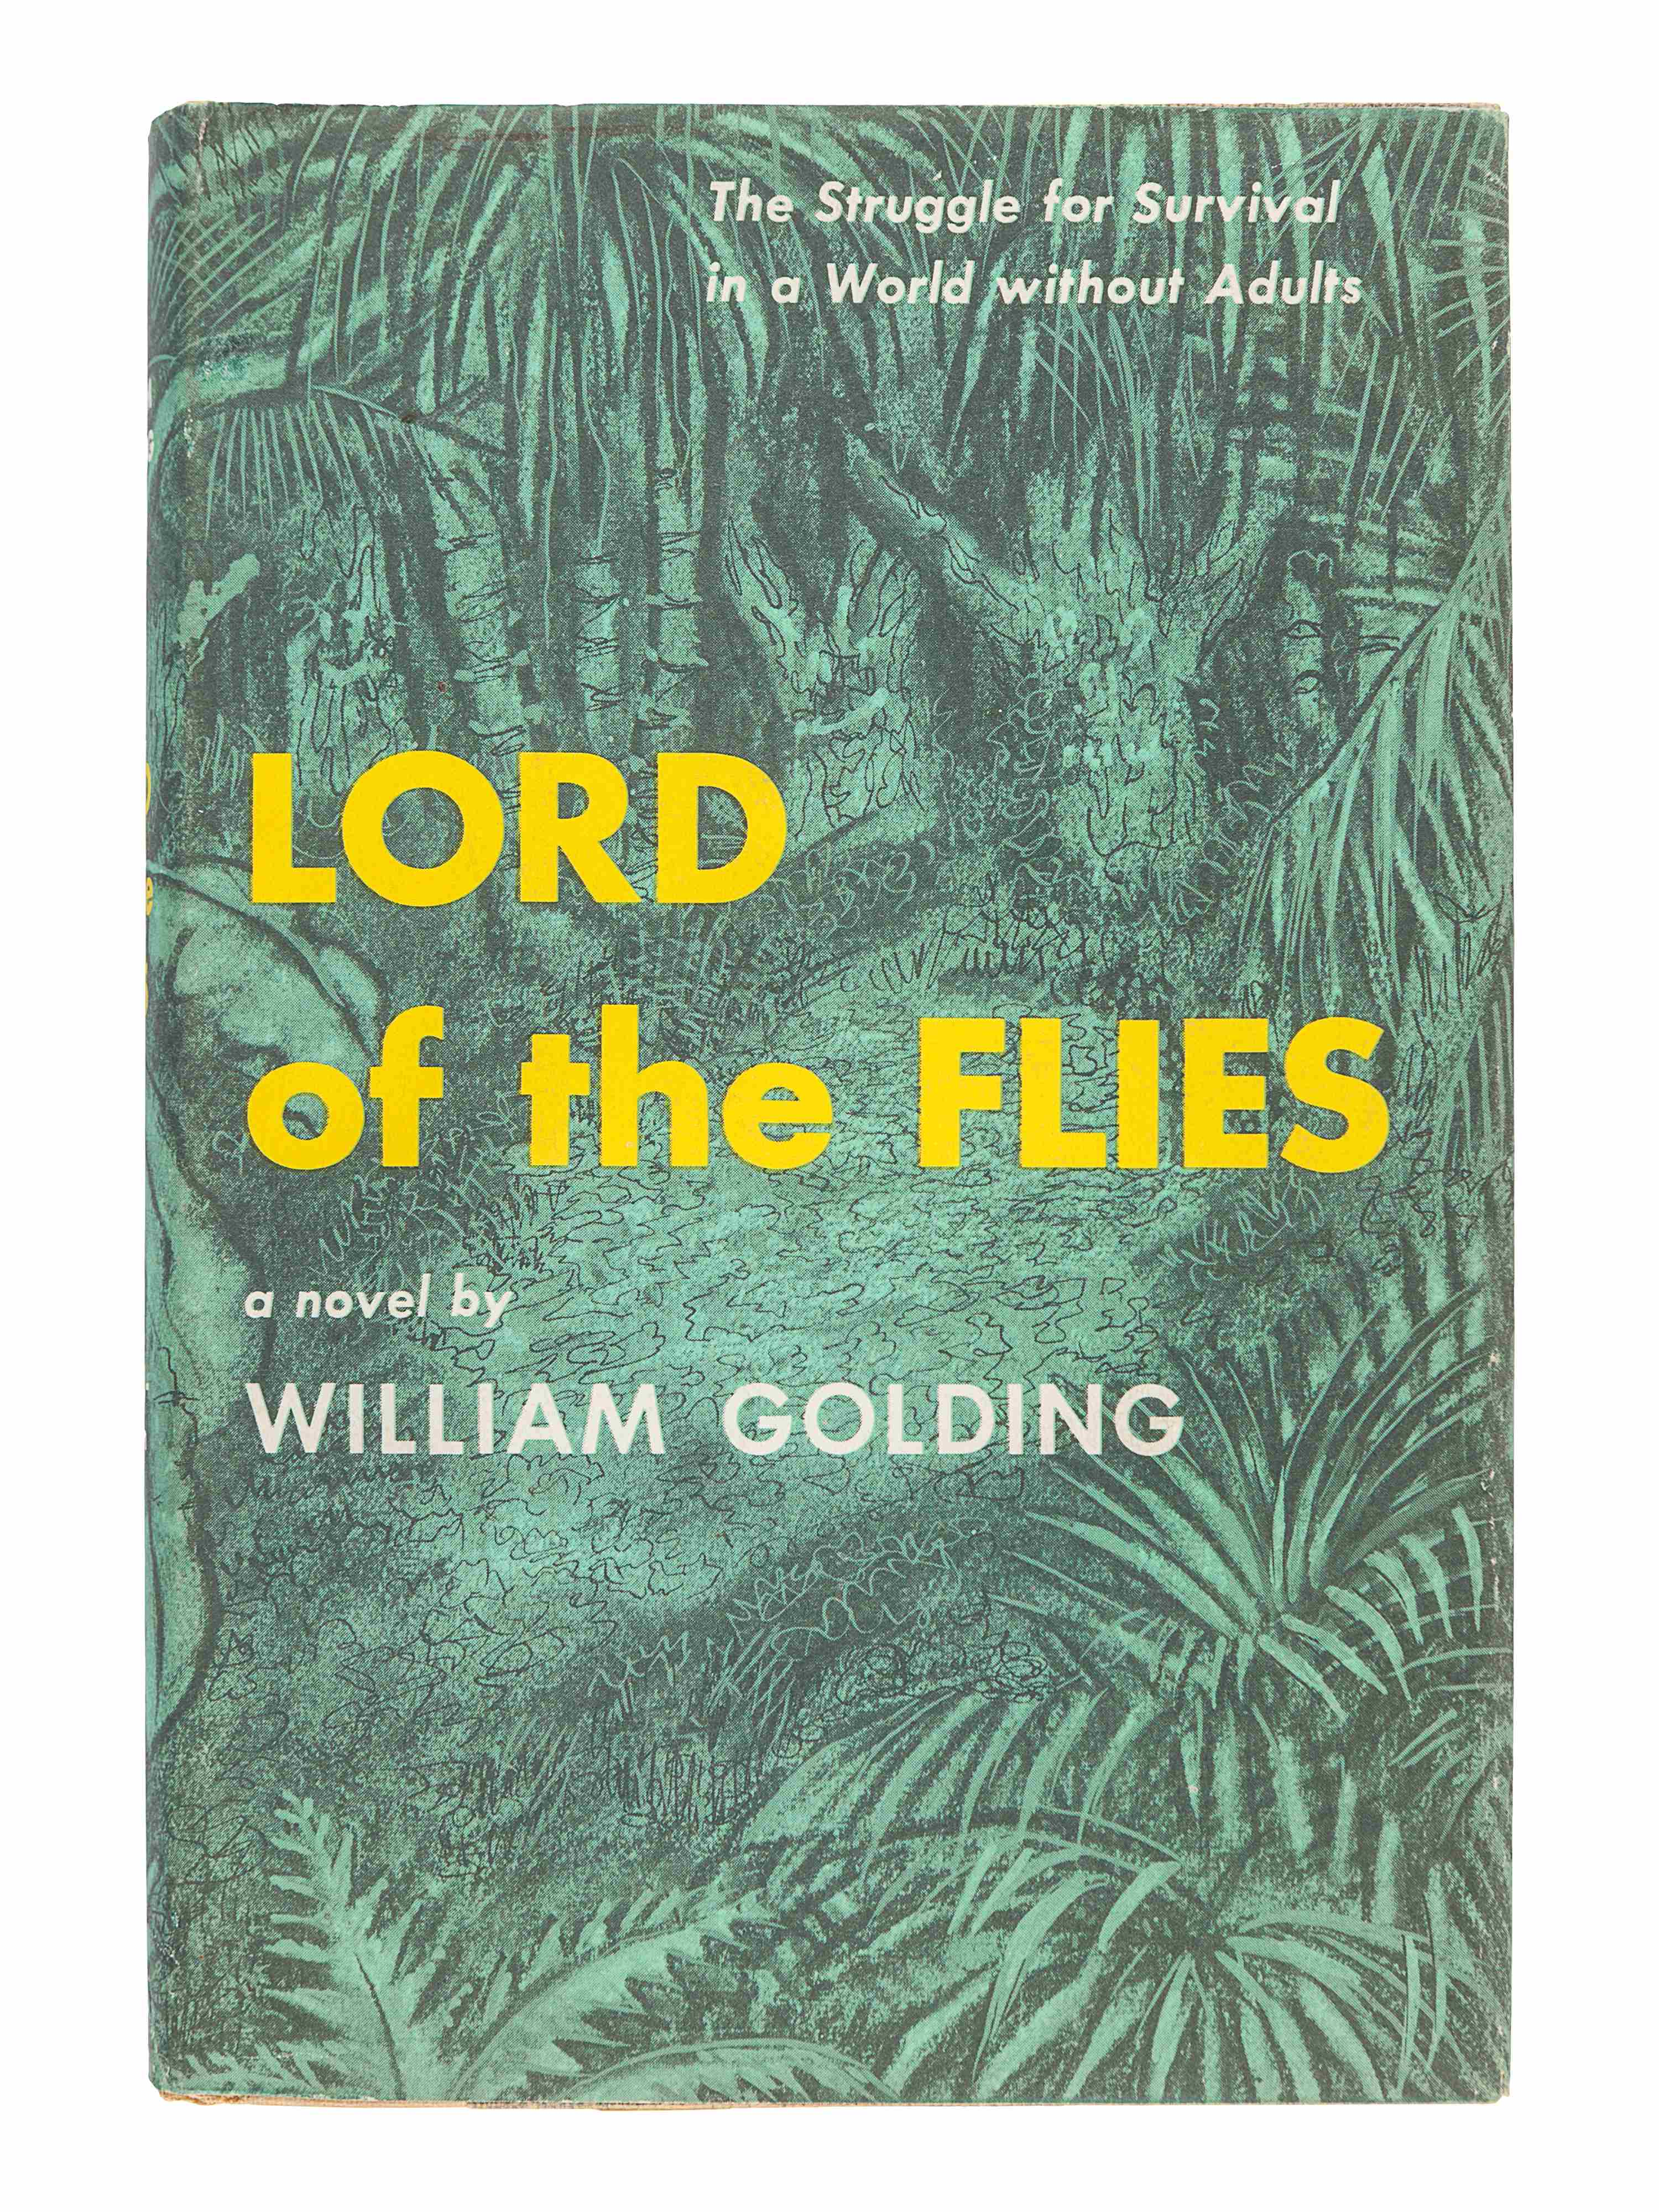 GOLDING, William (1911-1993). Lord of the Flies. New York: Coward-McCann, Inc., 1955. - Image 2 of 3